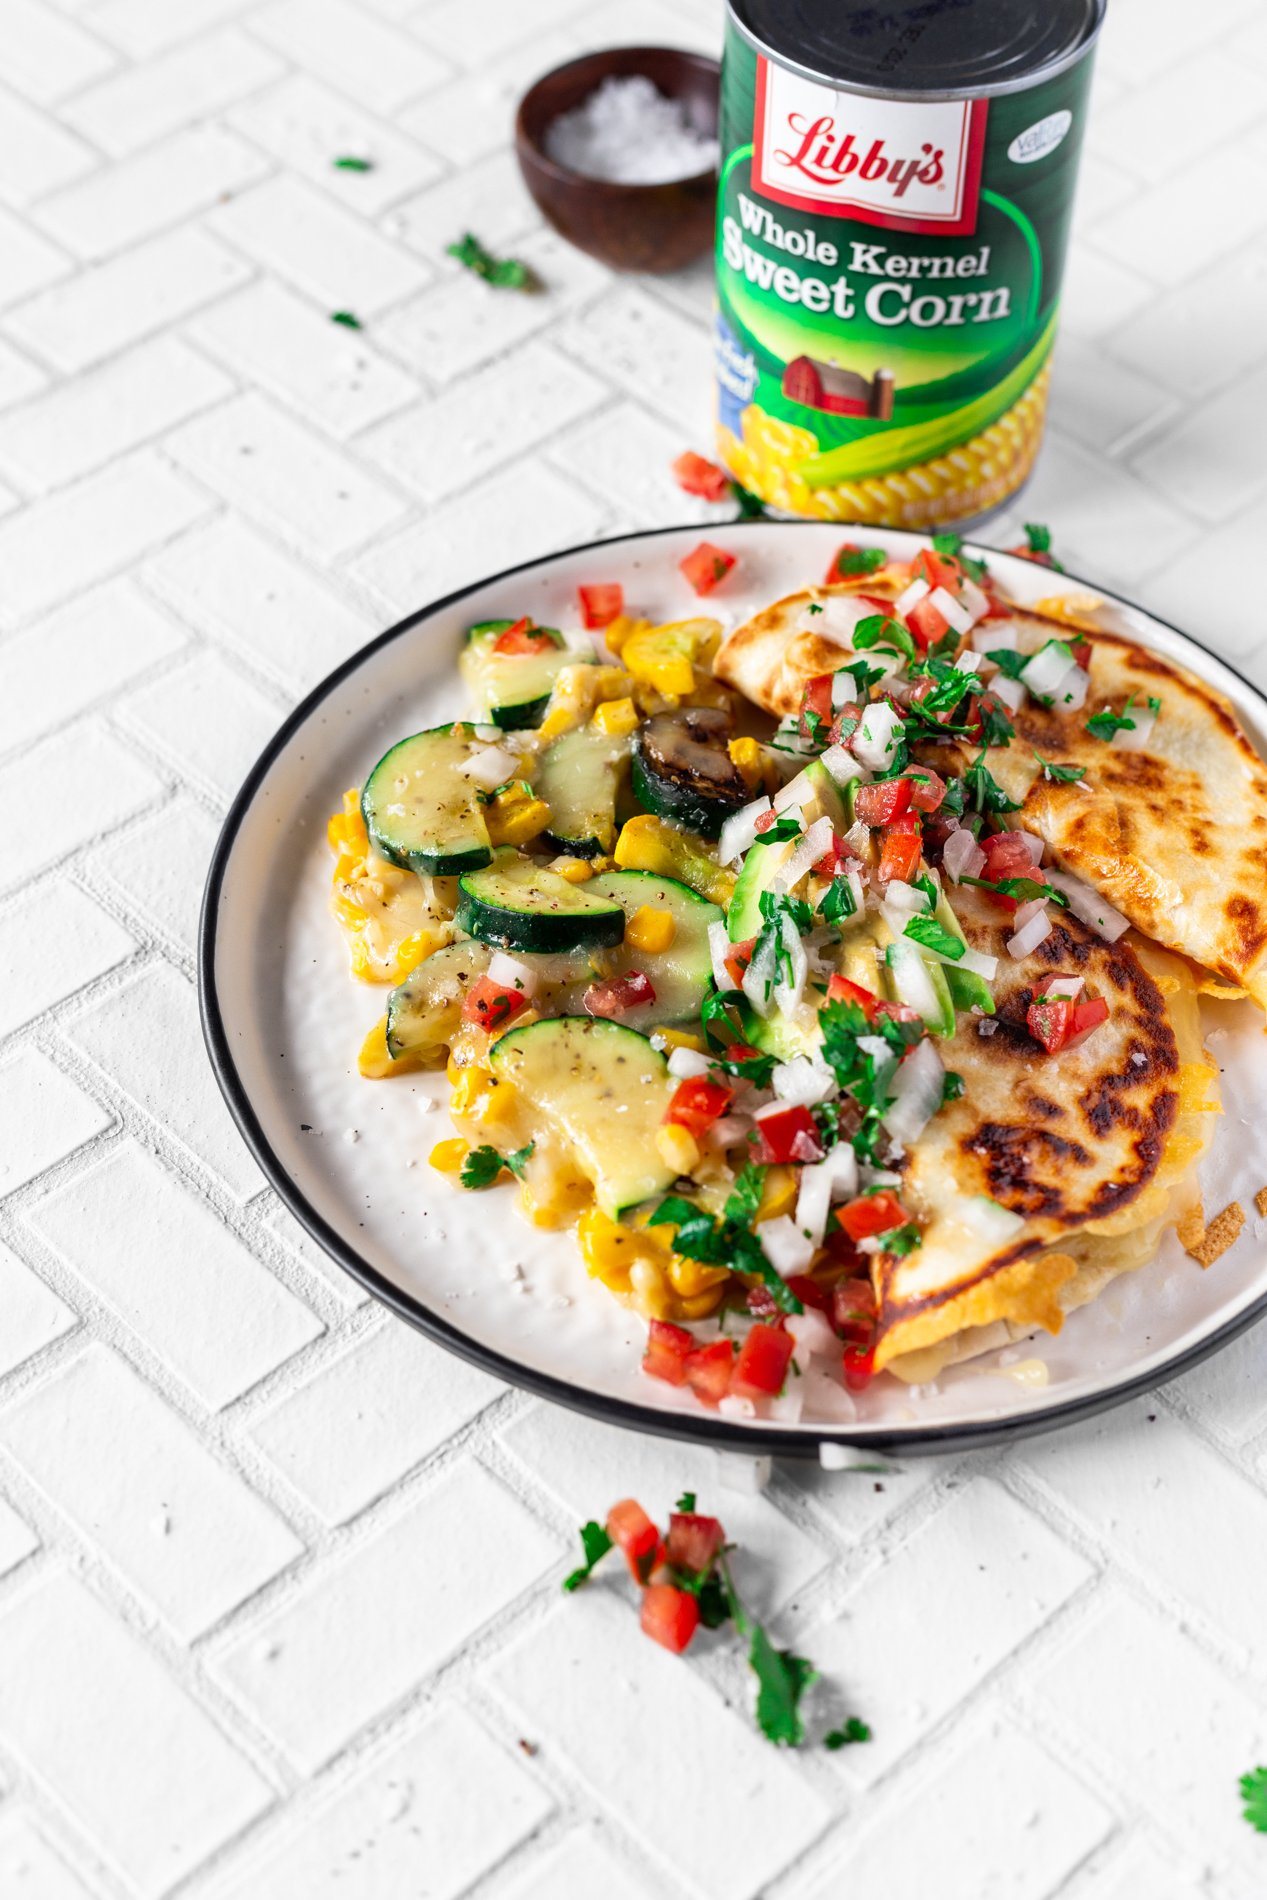 angled view of a plate of calabacitas con elote, or zucchini and corn covered with cheese, plated with quesadillas, pico de gallo, and avocado